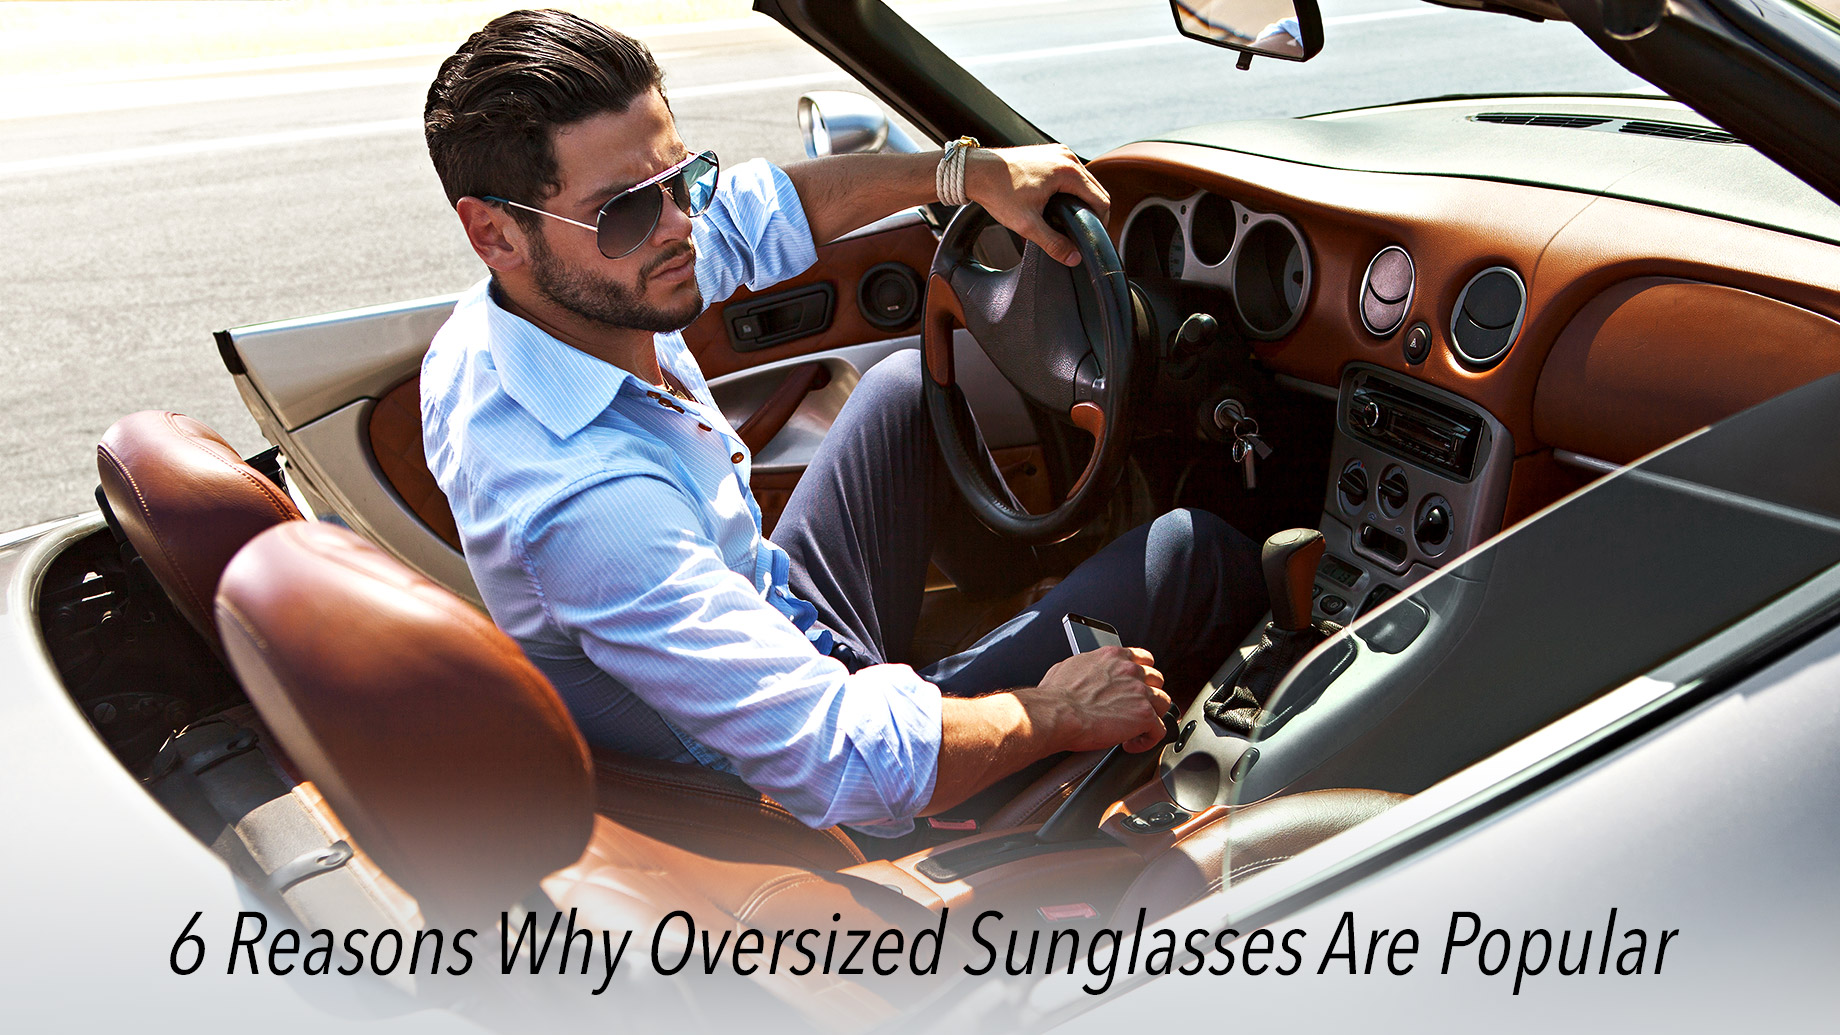 6 Reasons Why Oversized Sunglasses Are Popular